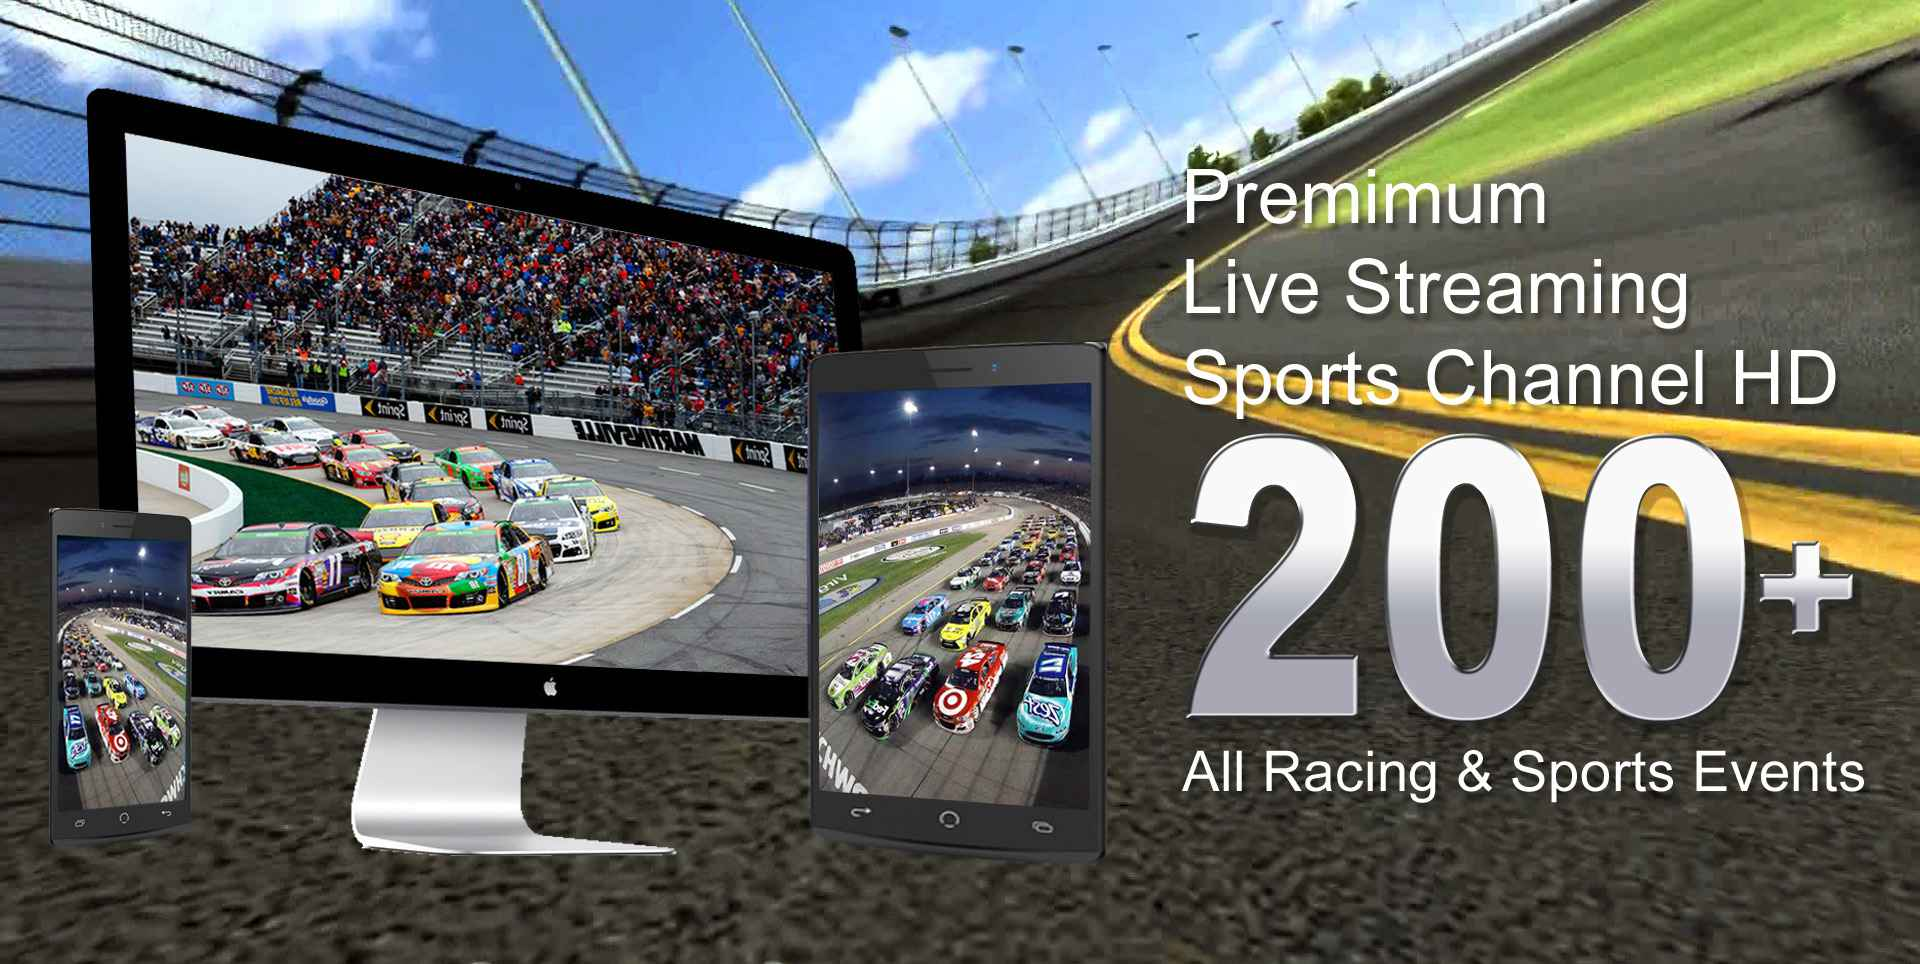 Live 2014 NASCAR Nationwide Series at the Brickyard Online